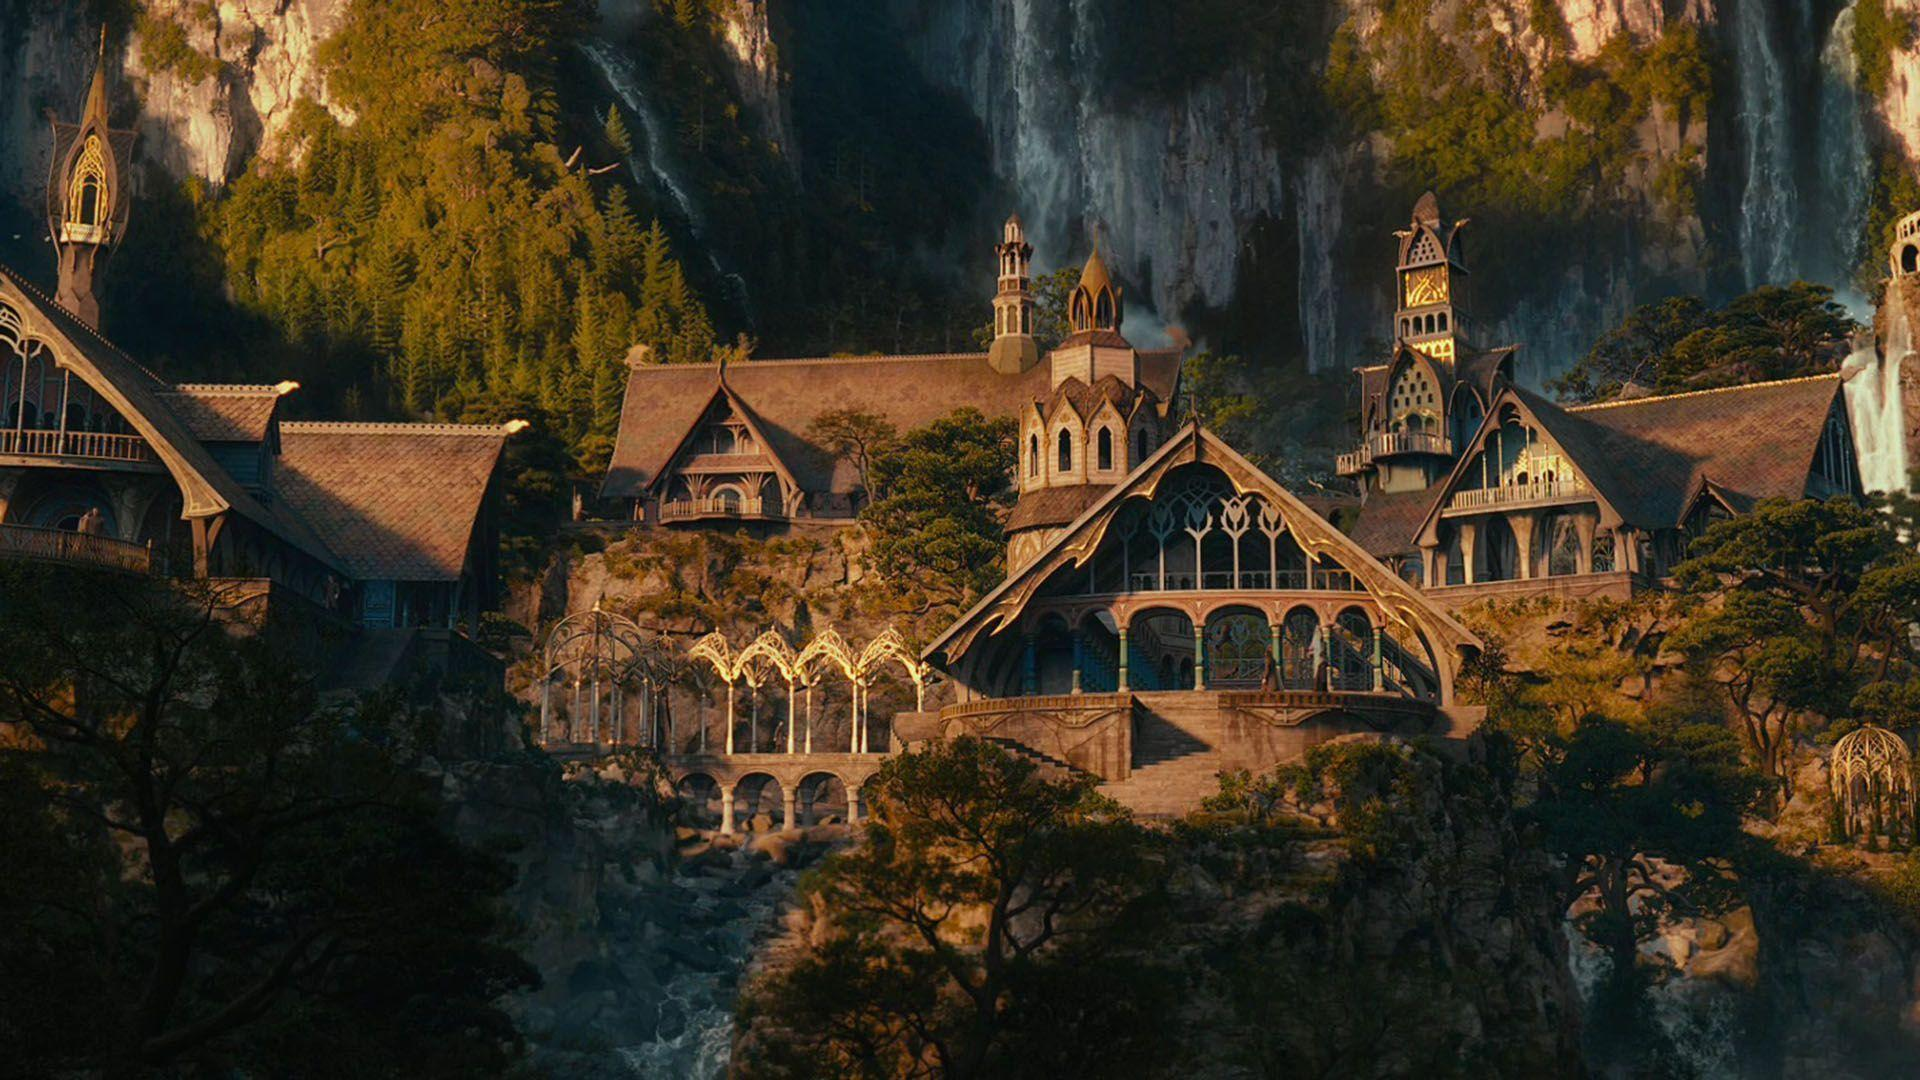 Appealing Rivendell Wallpaper 1920x1080PX ~ Amazing The Hobbit ...